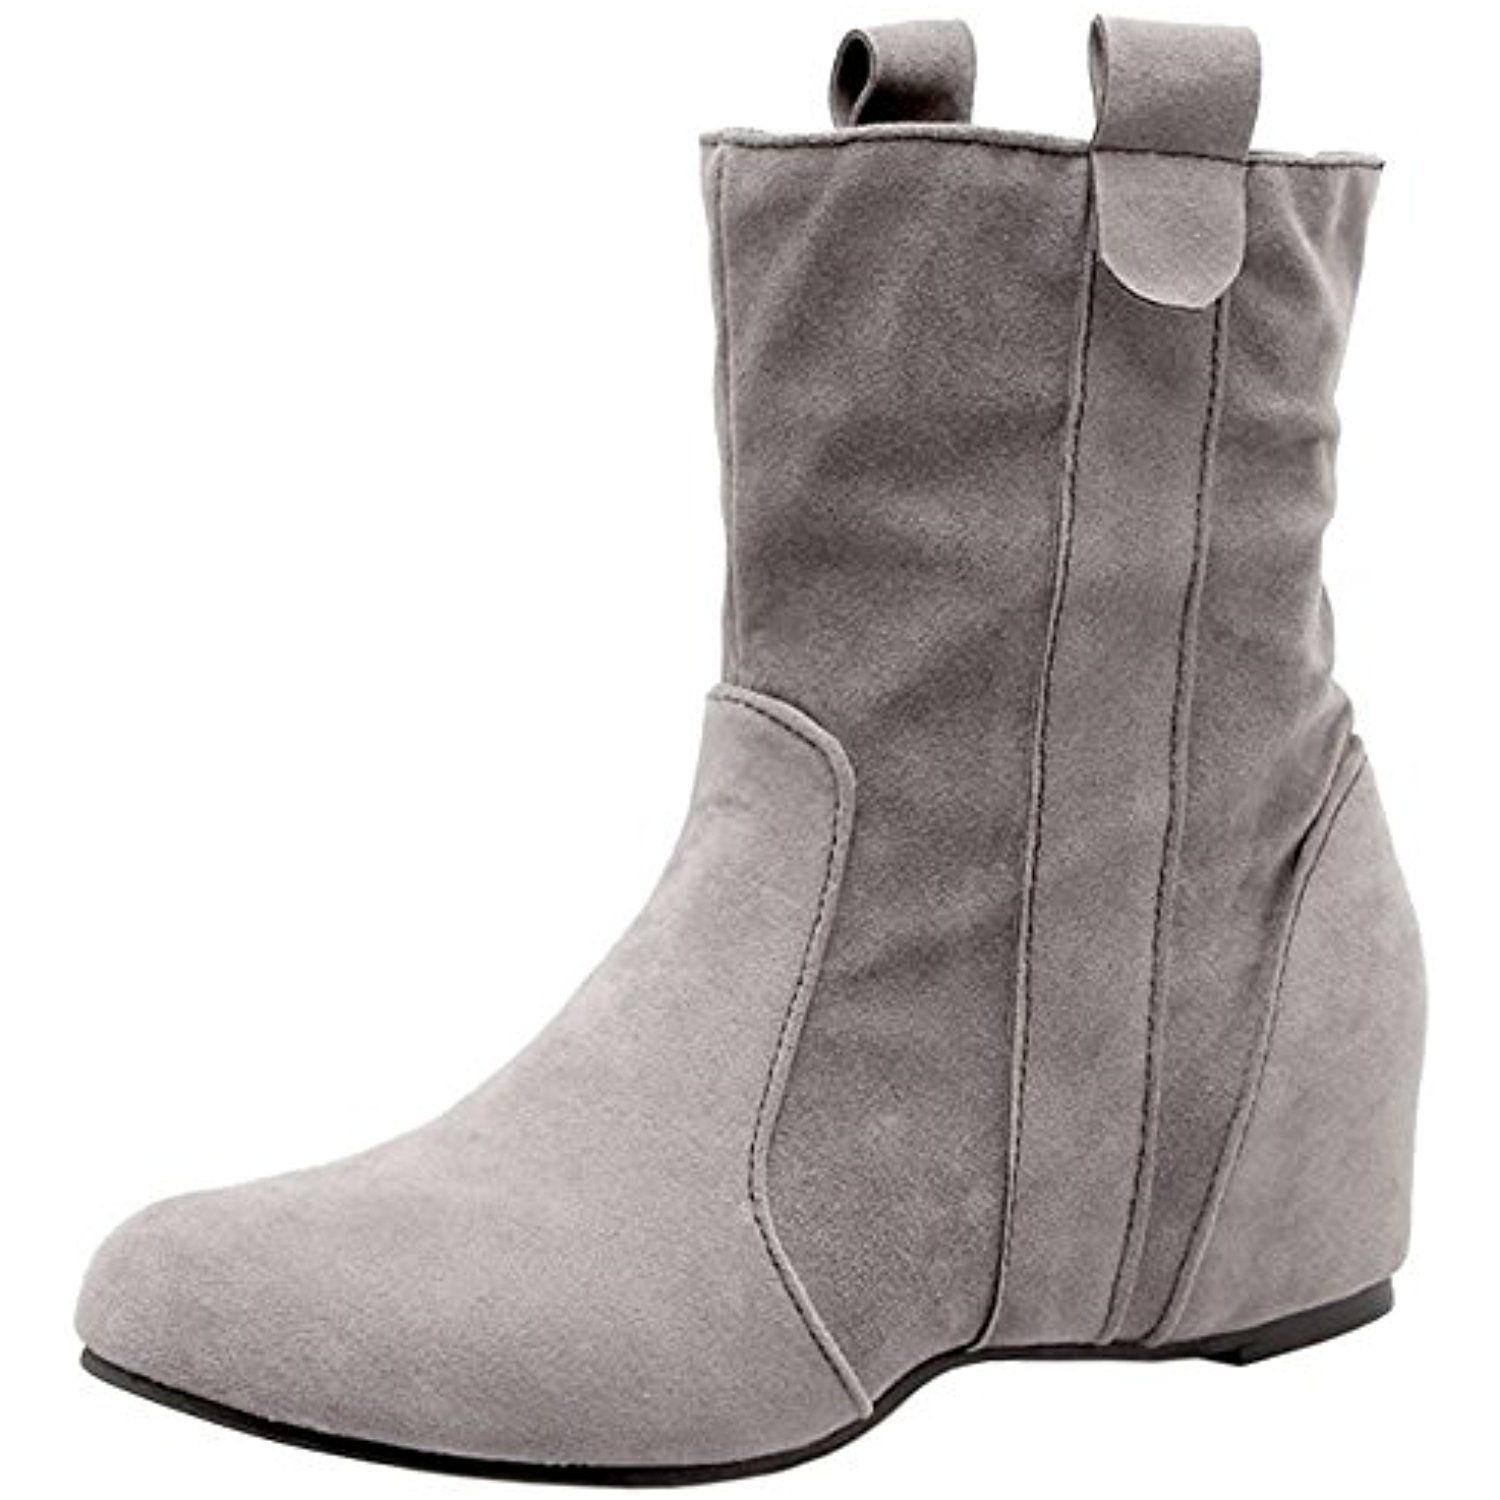 Women height Increasing Boots Pull On